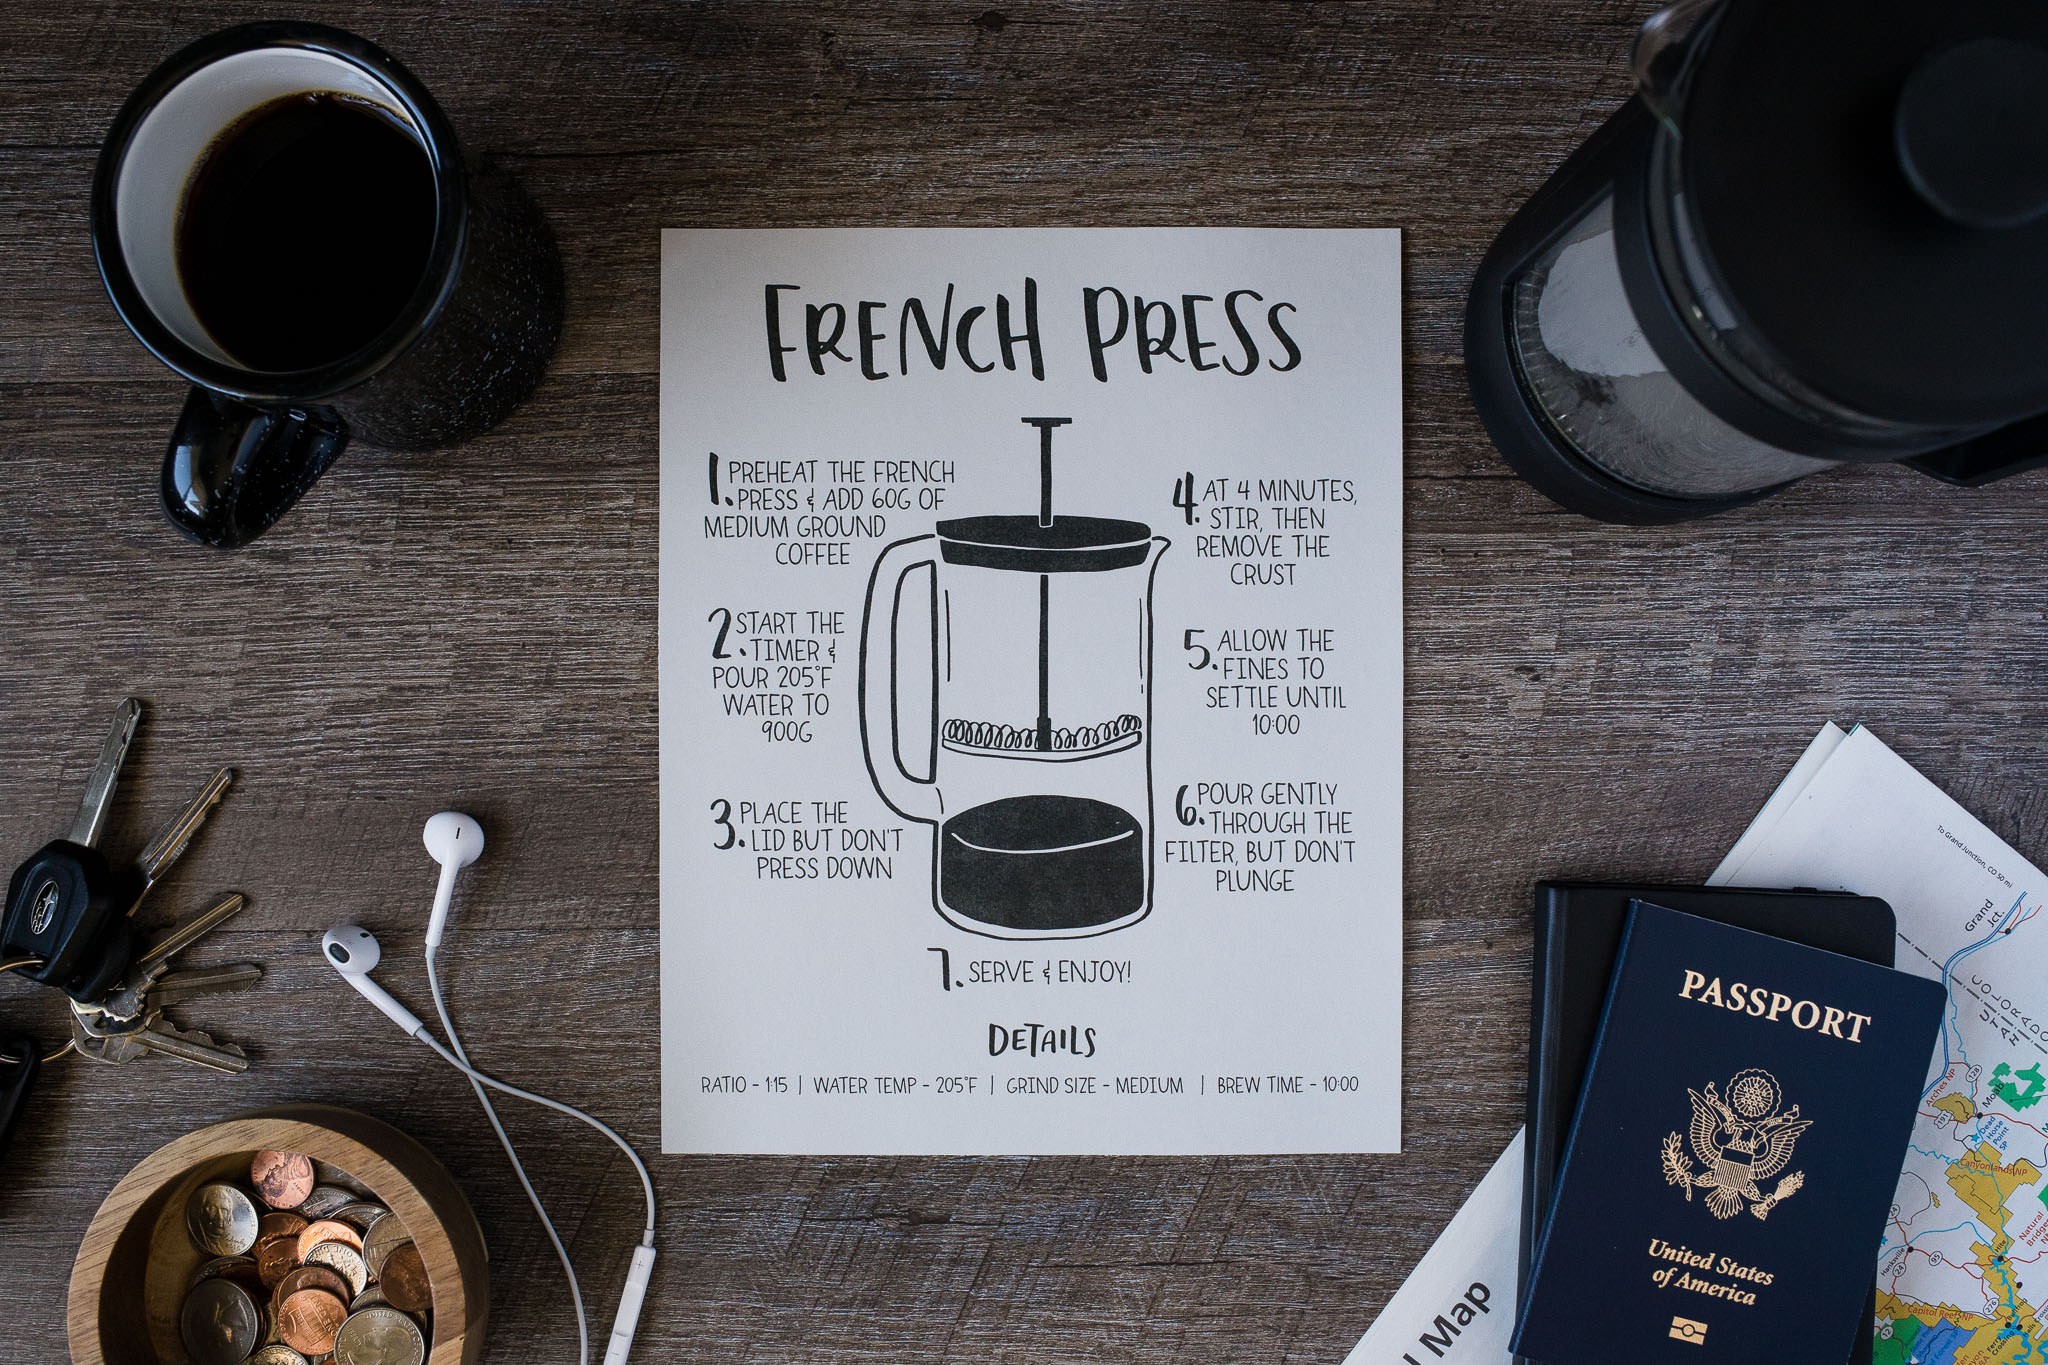 French Press coffee brewing guide poster